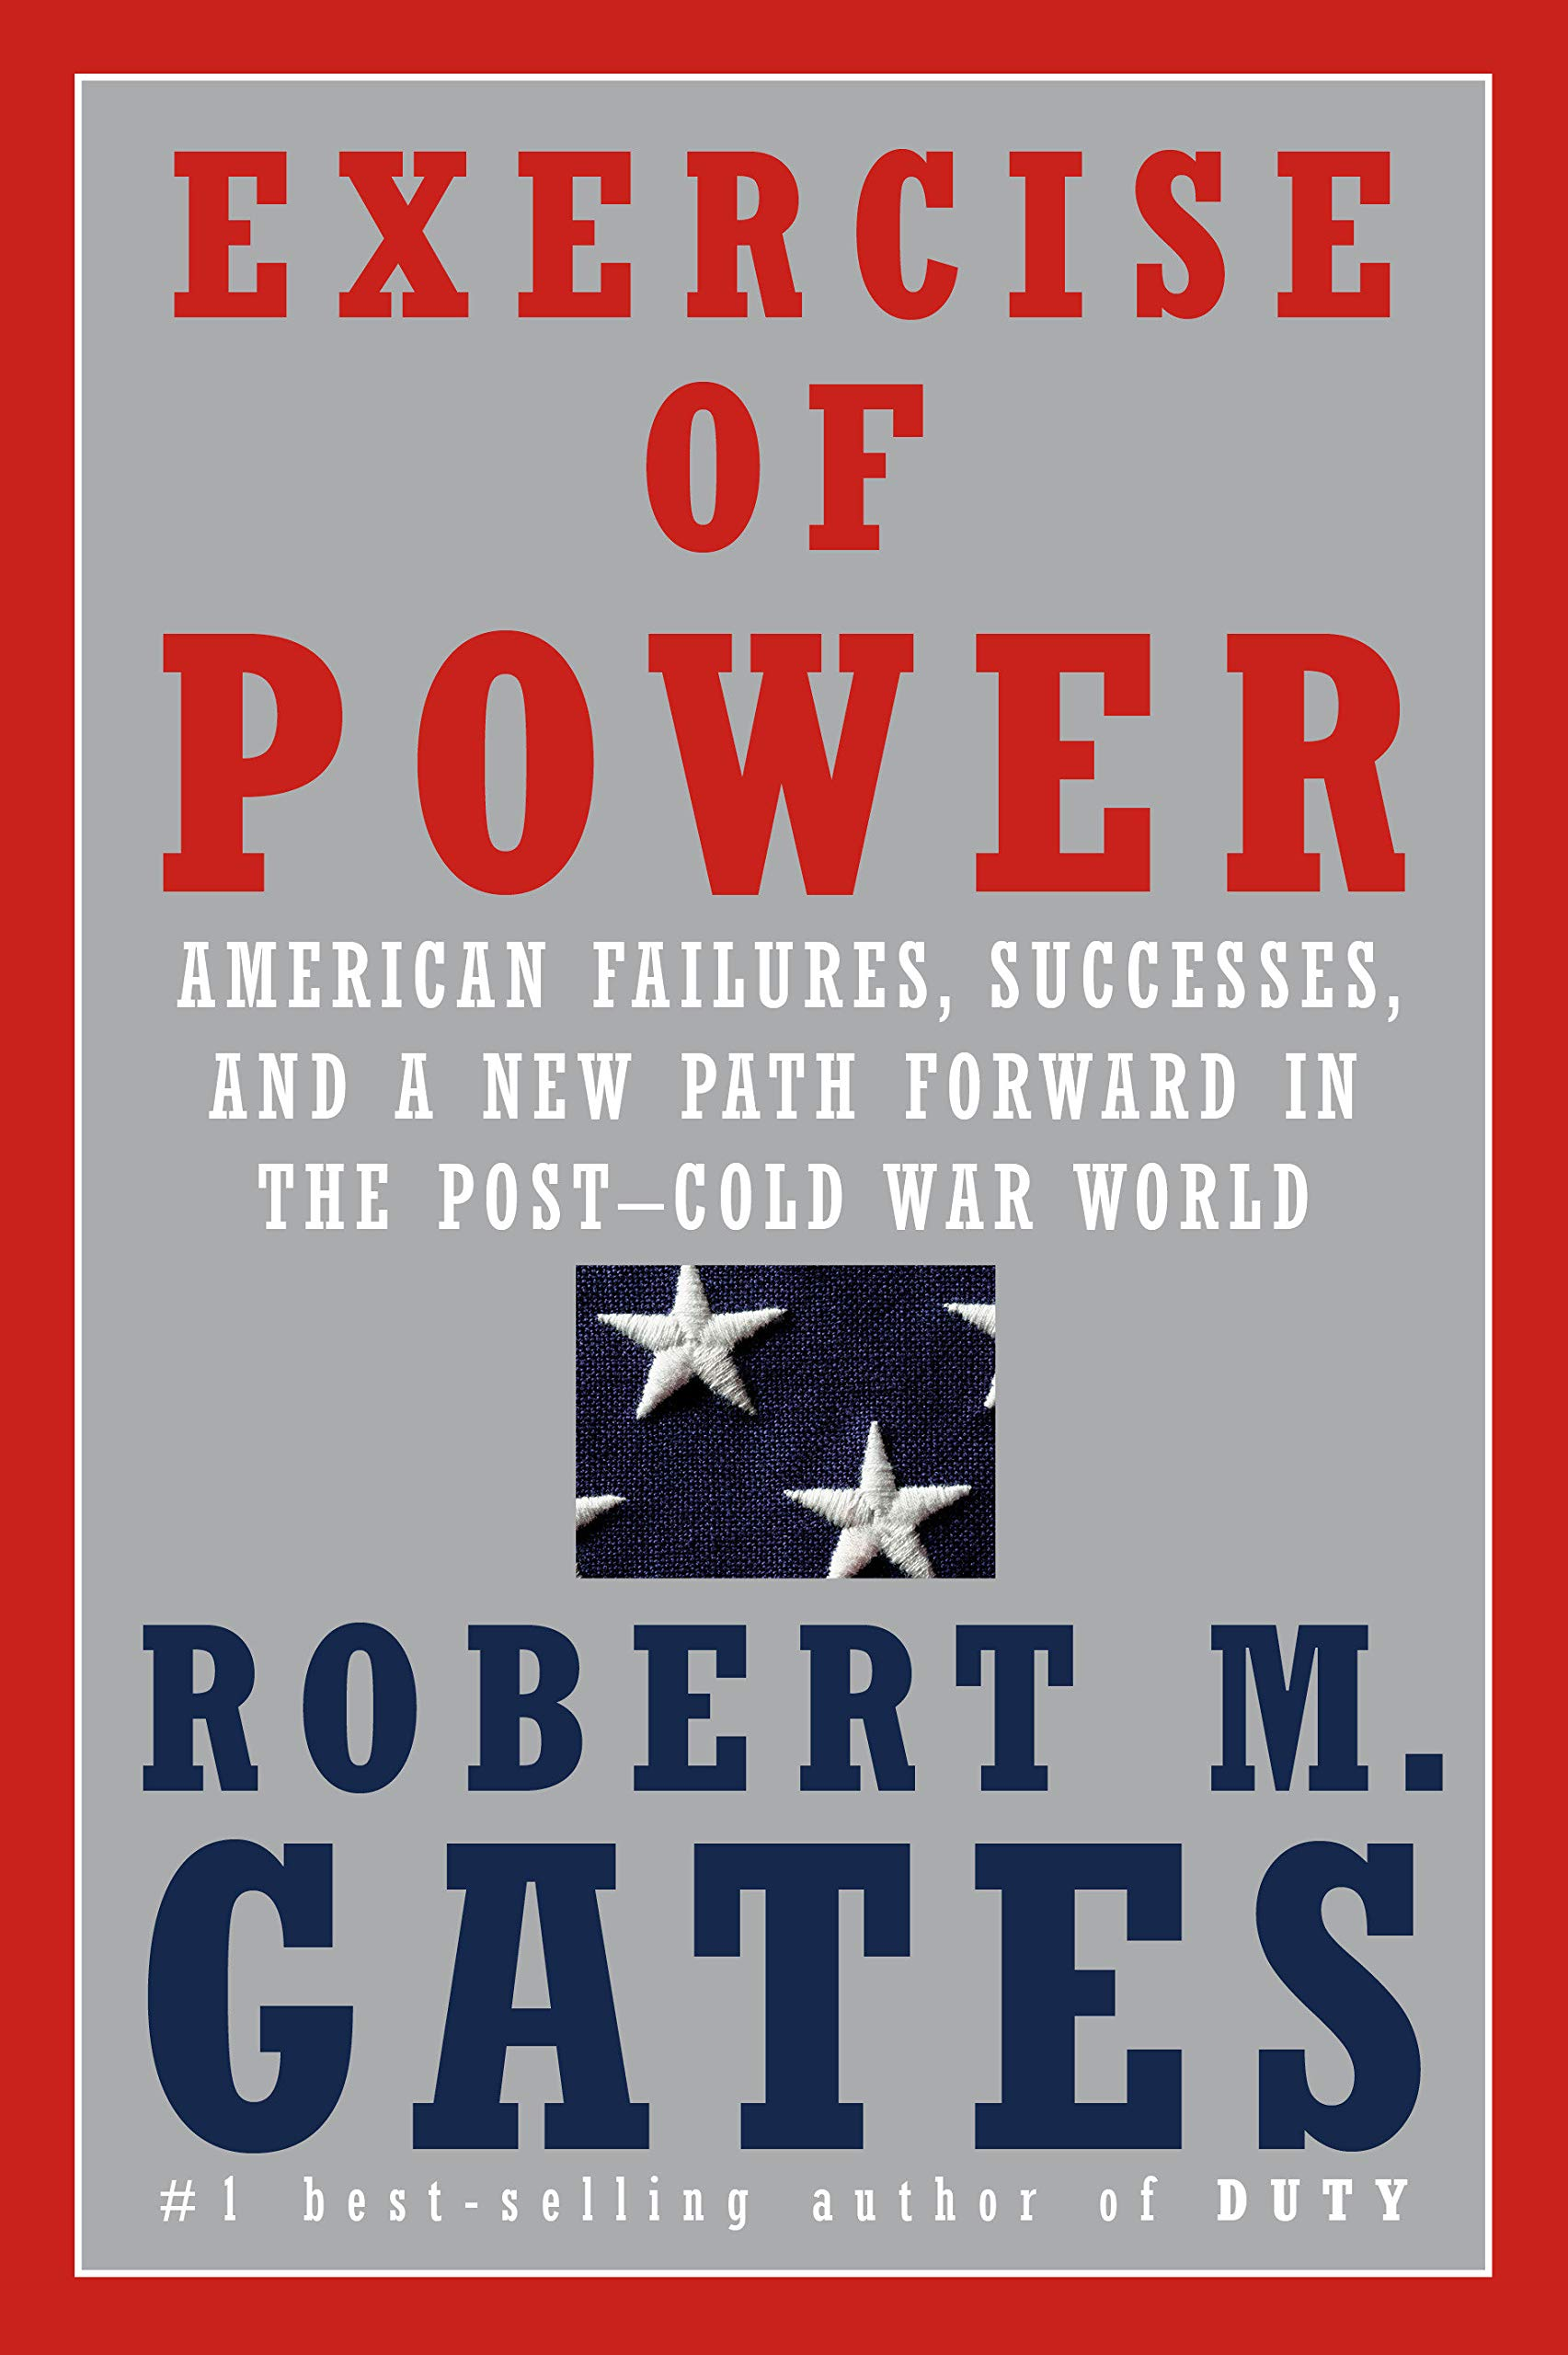 Exercise of Power: American Failures, Successes, and a New Path Forward within the Post-Cold War World